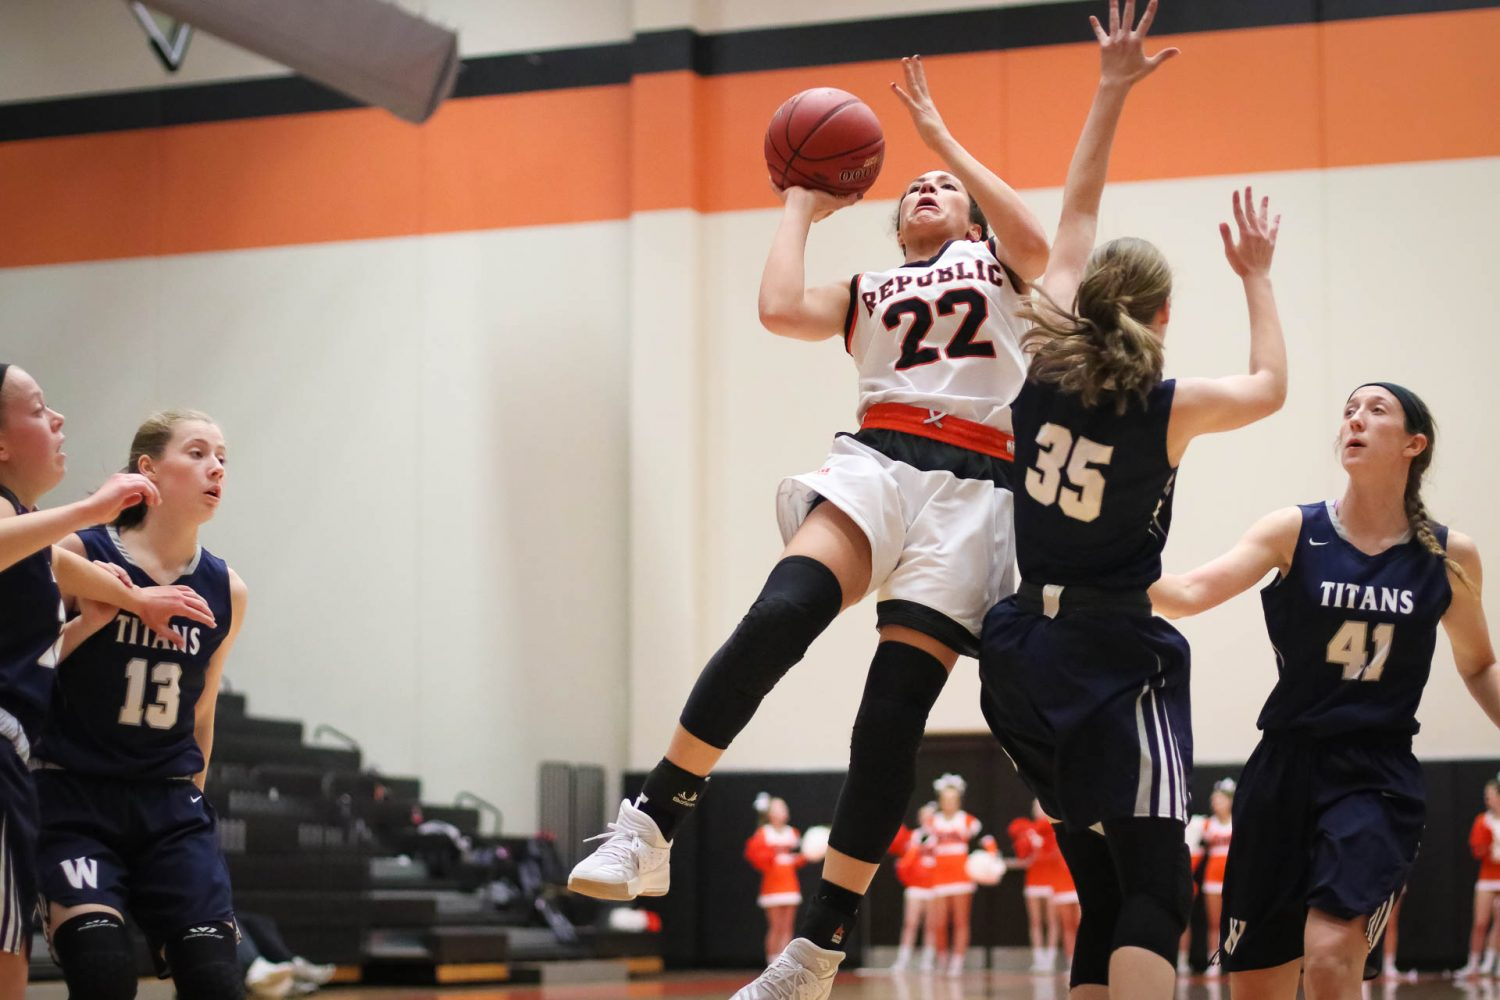 Barrage Of Threes Sinks Lady Tigers